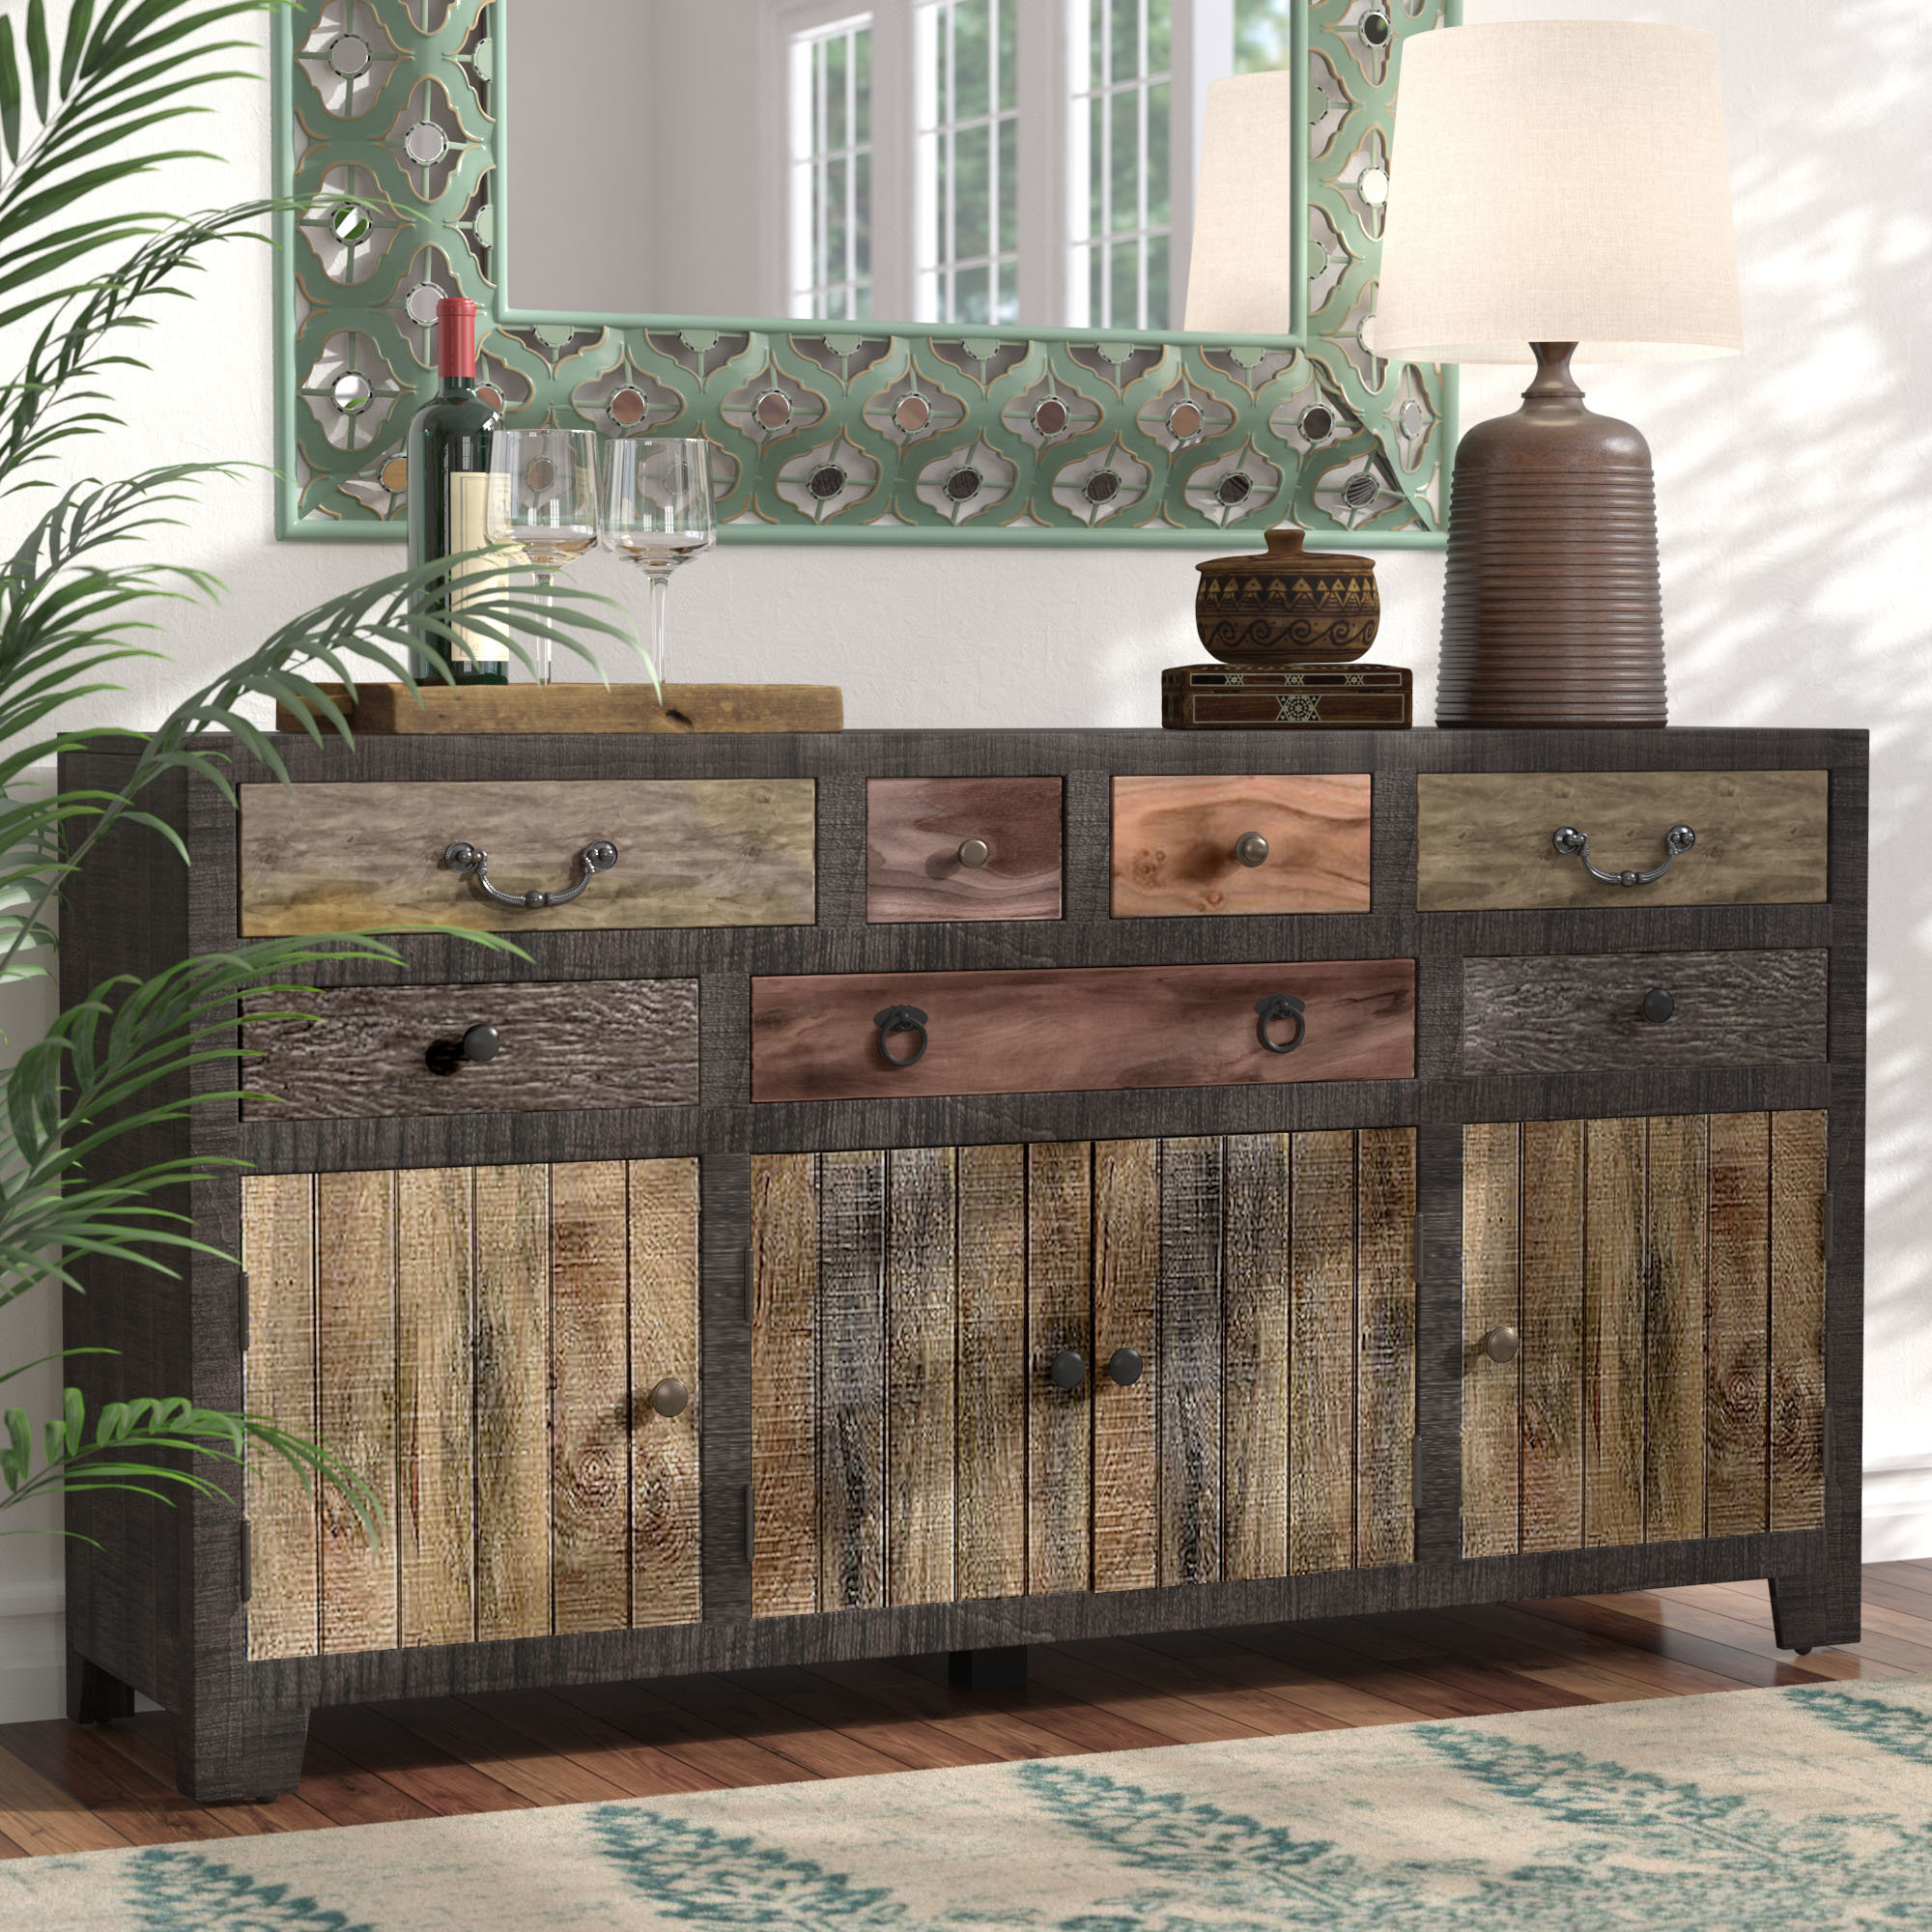 Inspiration about Moultry 7 Drawer 4 Door Sideboard Intended For Most Current Drummond 4 Drawer Sideboards (#9 of 20)